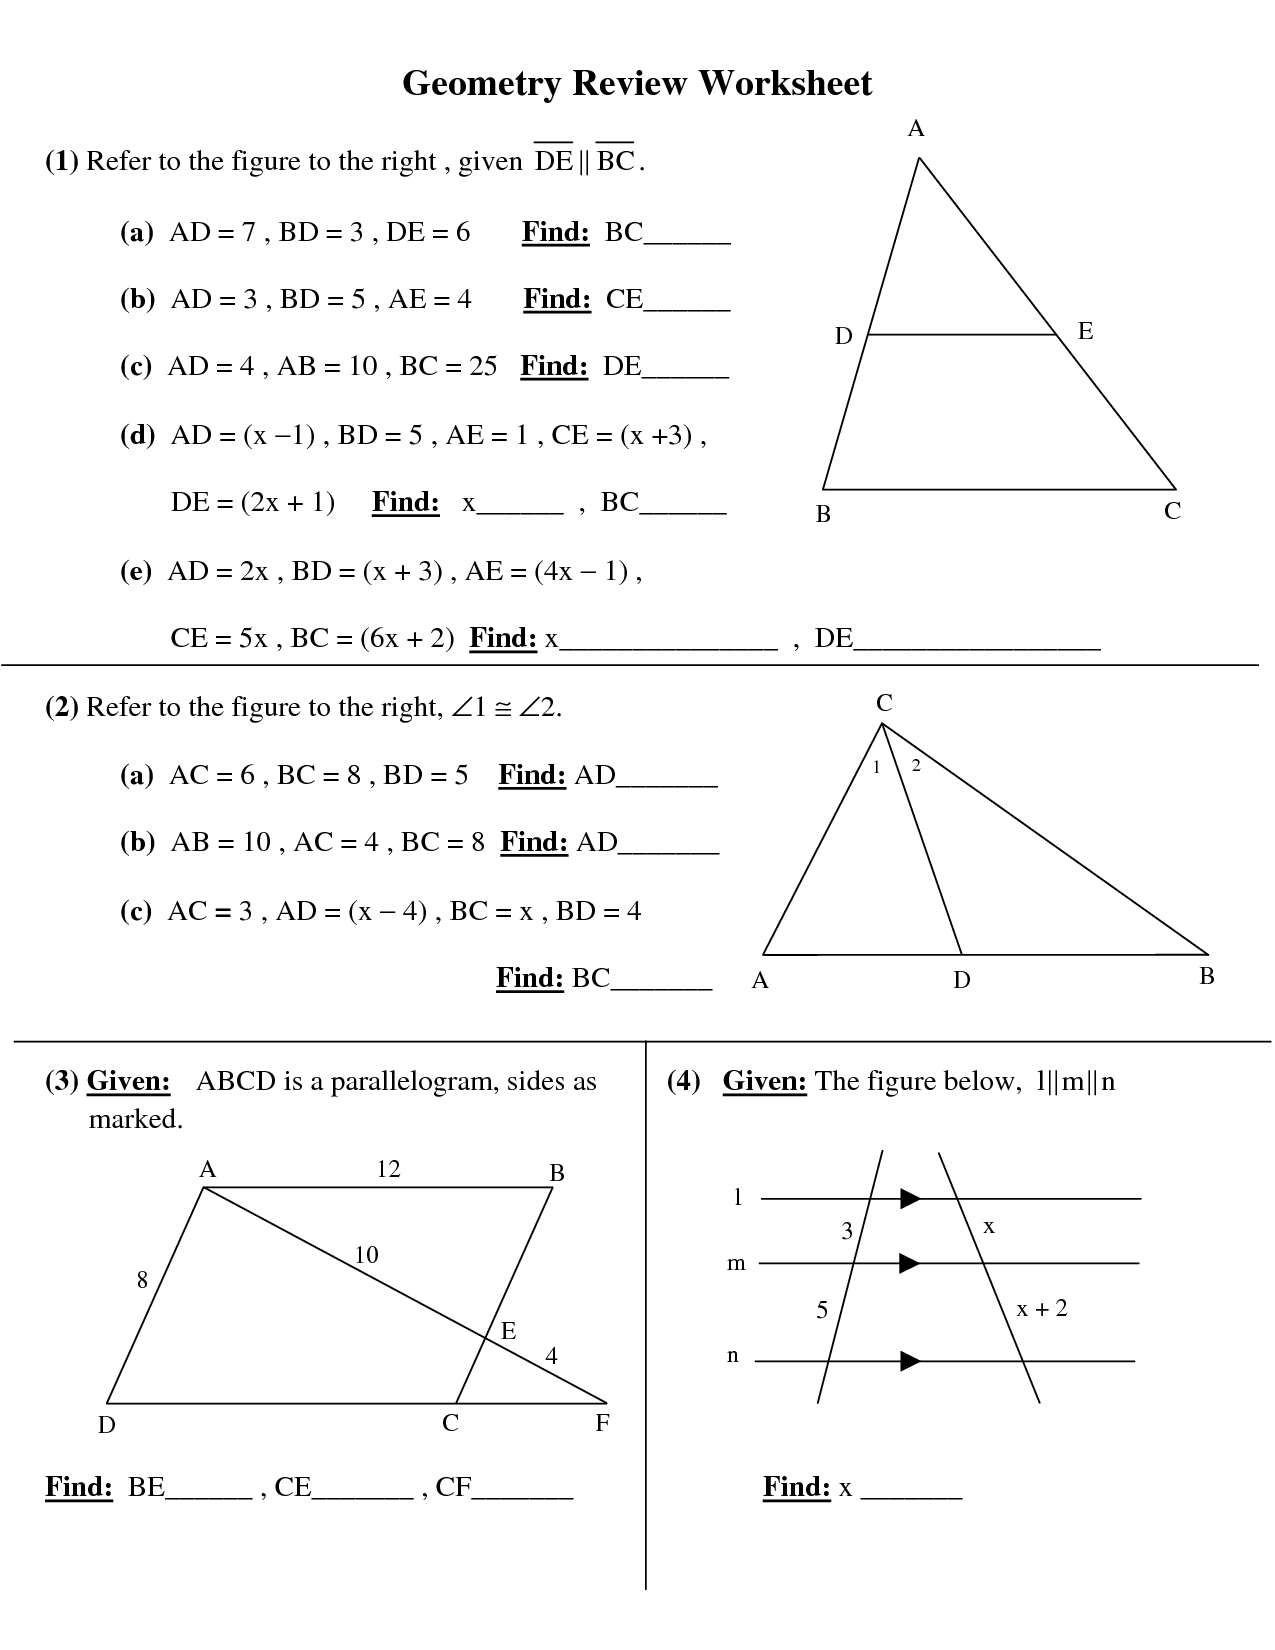 worksheet Geometry Review Worksheets free high school geometry worksheets abitlikethis math printable spelling worksheets